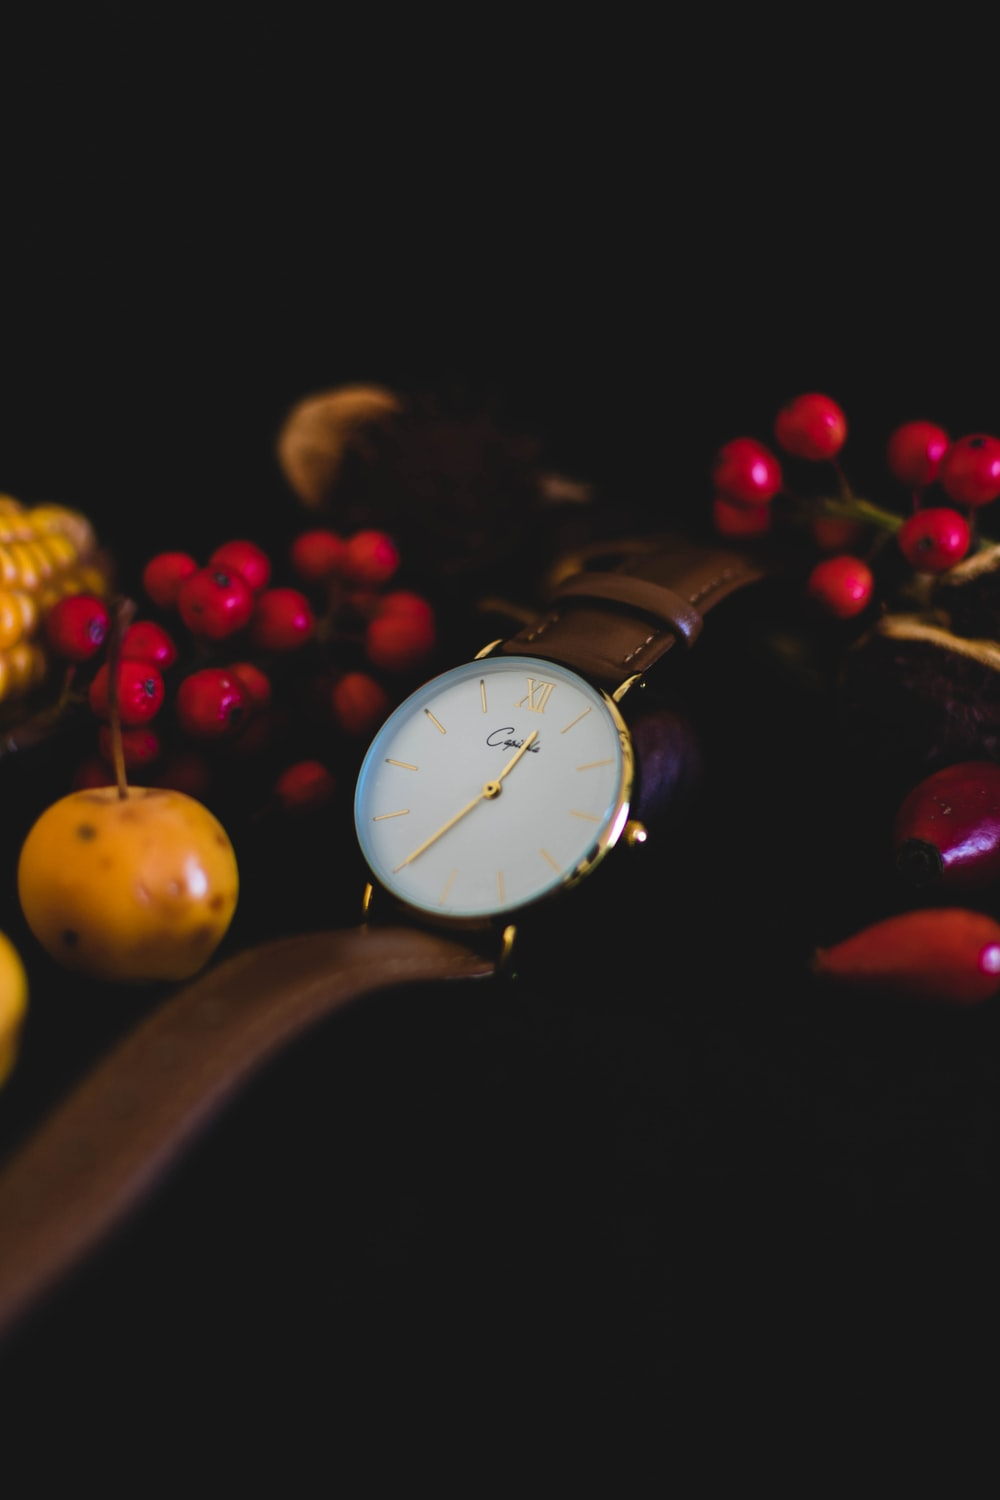 round gold-colored analog watch with leather strap near fruits